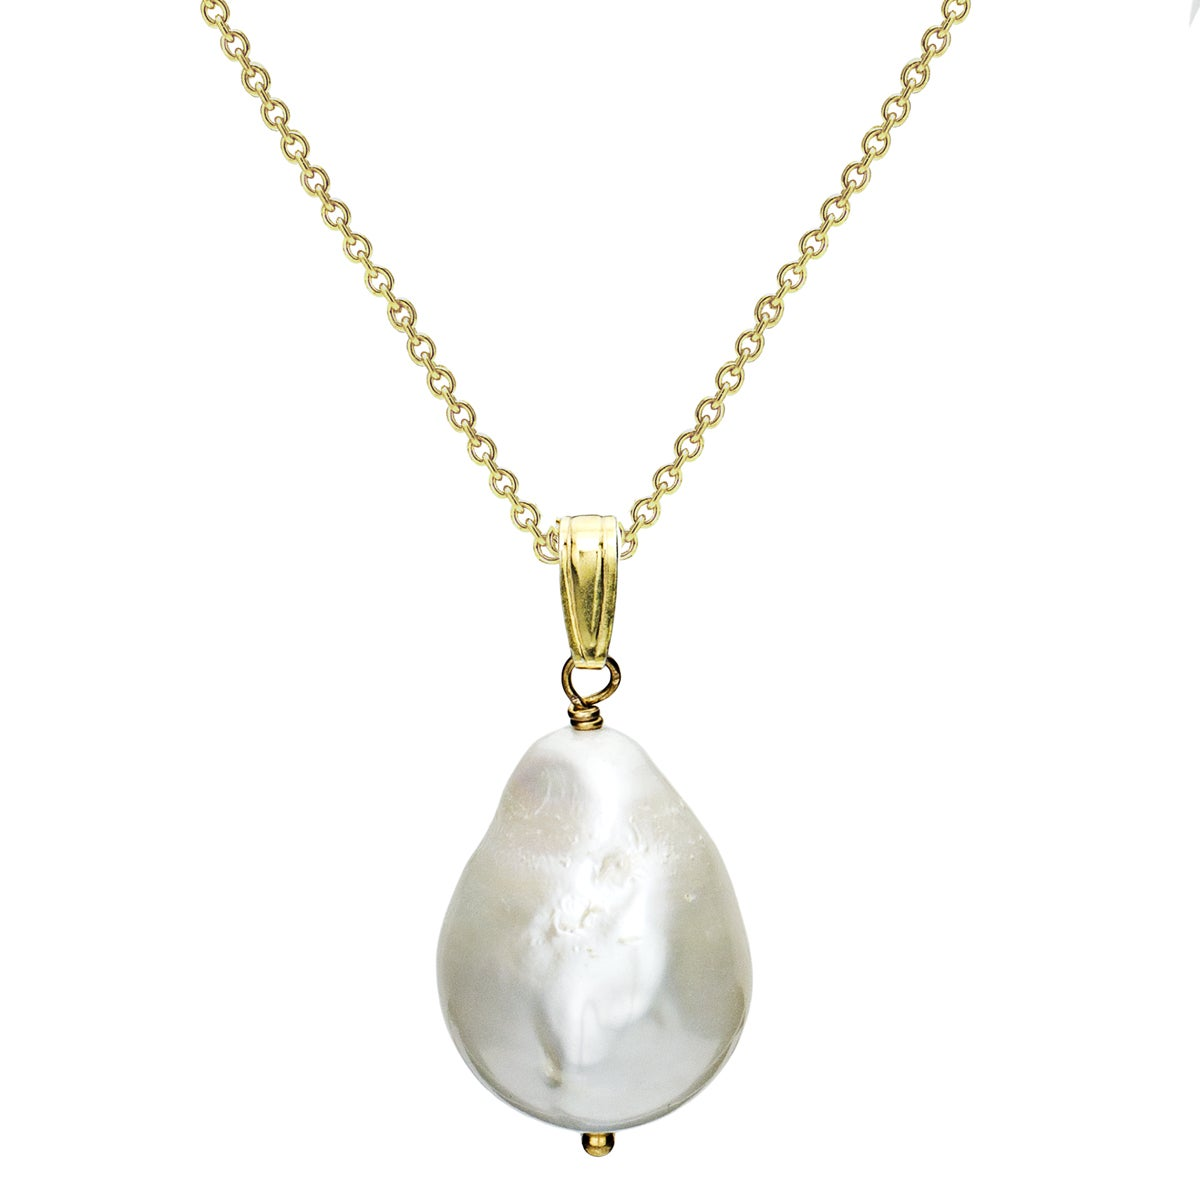 DaVonna 24k Gold over Silver FW Pearl Necklace (12-17 mm)